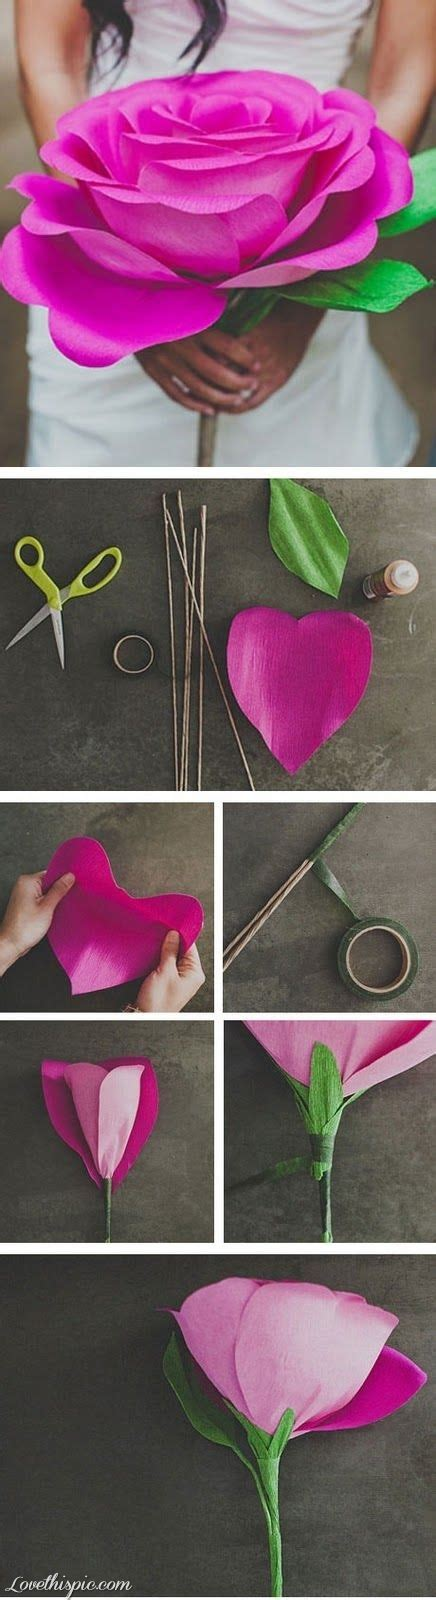 diy paper flowers craft diy paper flowers pictures photos and images for